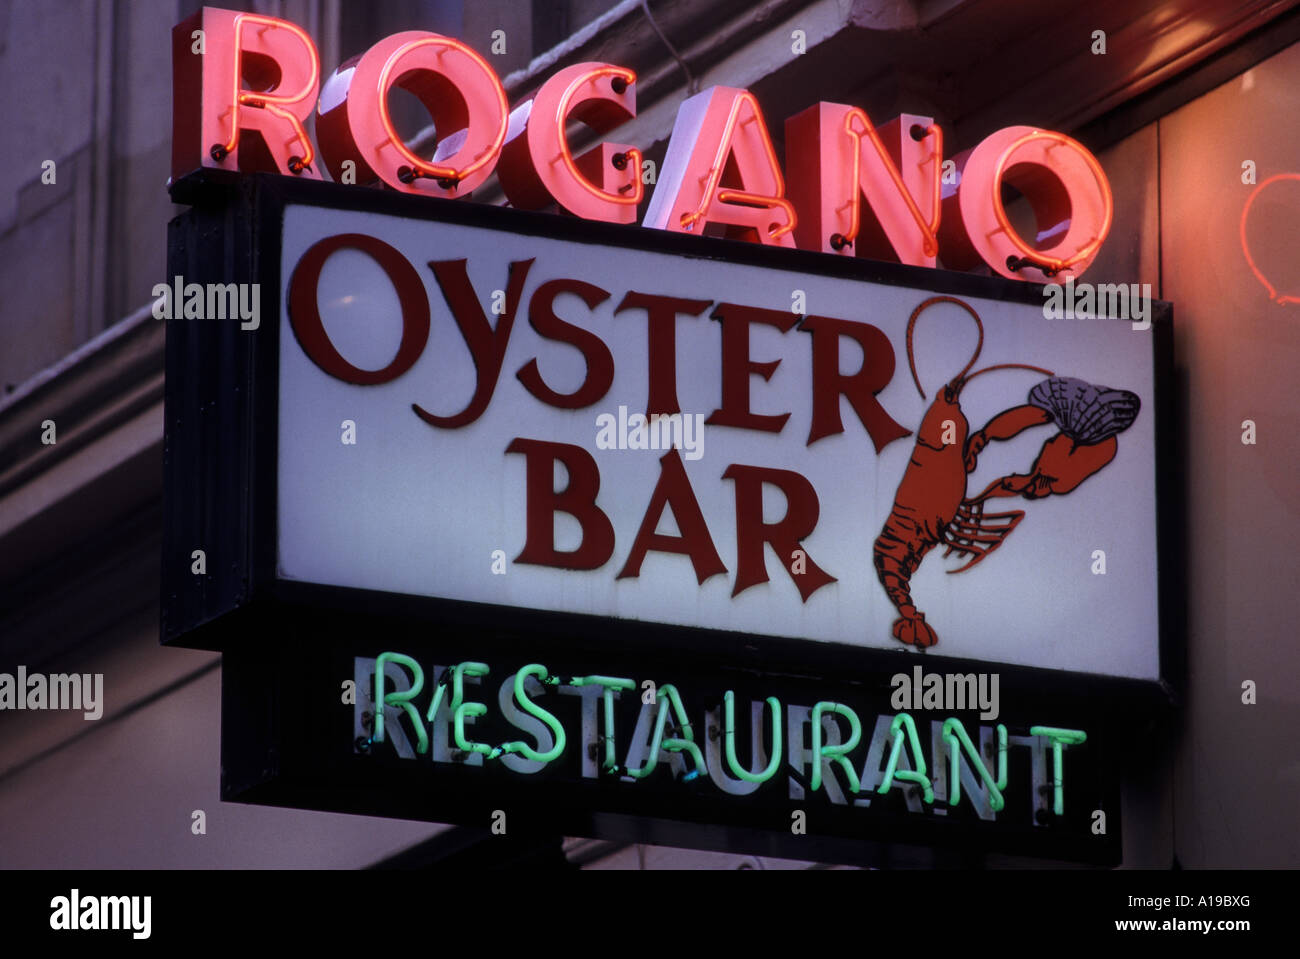 Sign outside Rogano Glasgow restaurant and oyster bar famed for its sea food - Stock Image